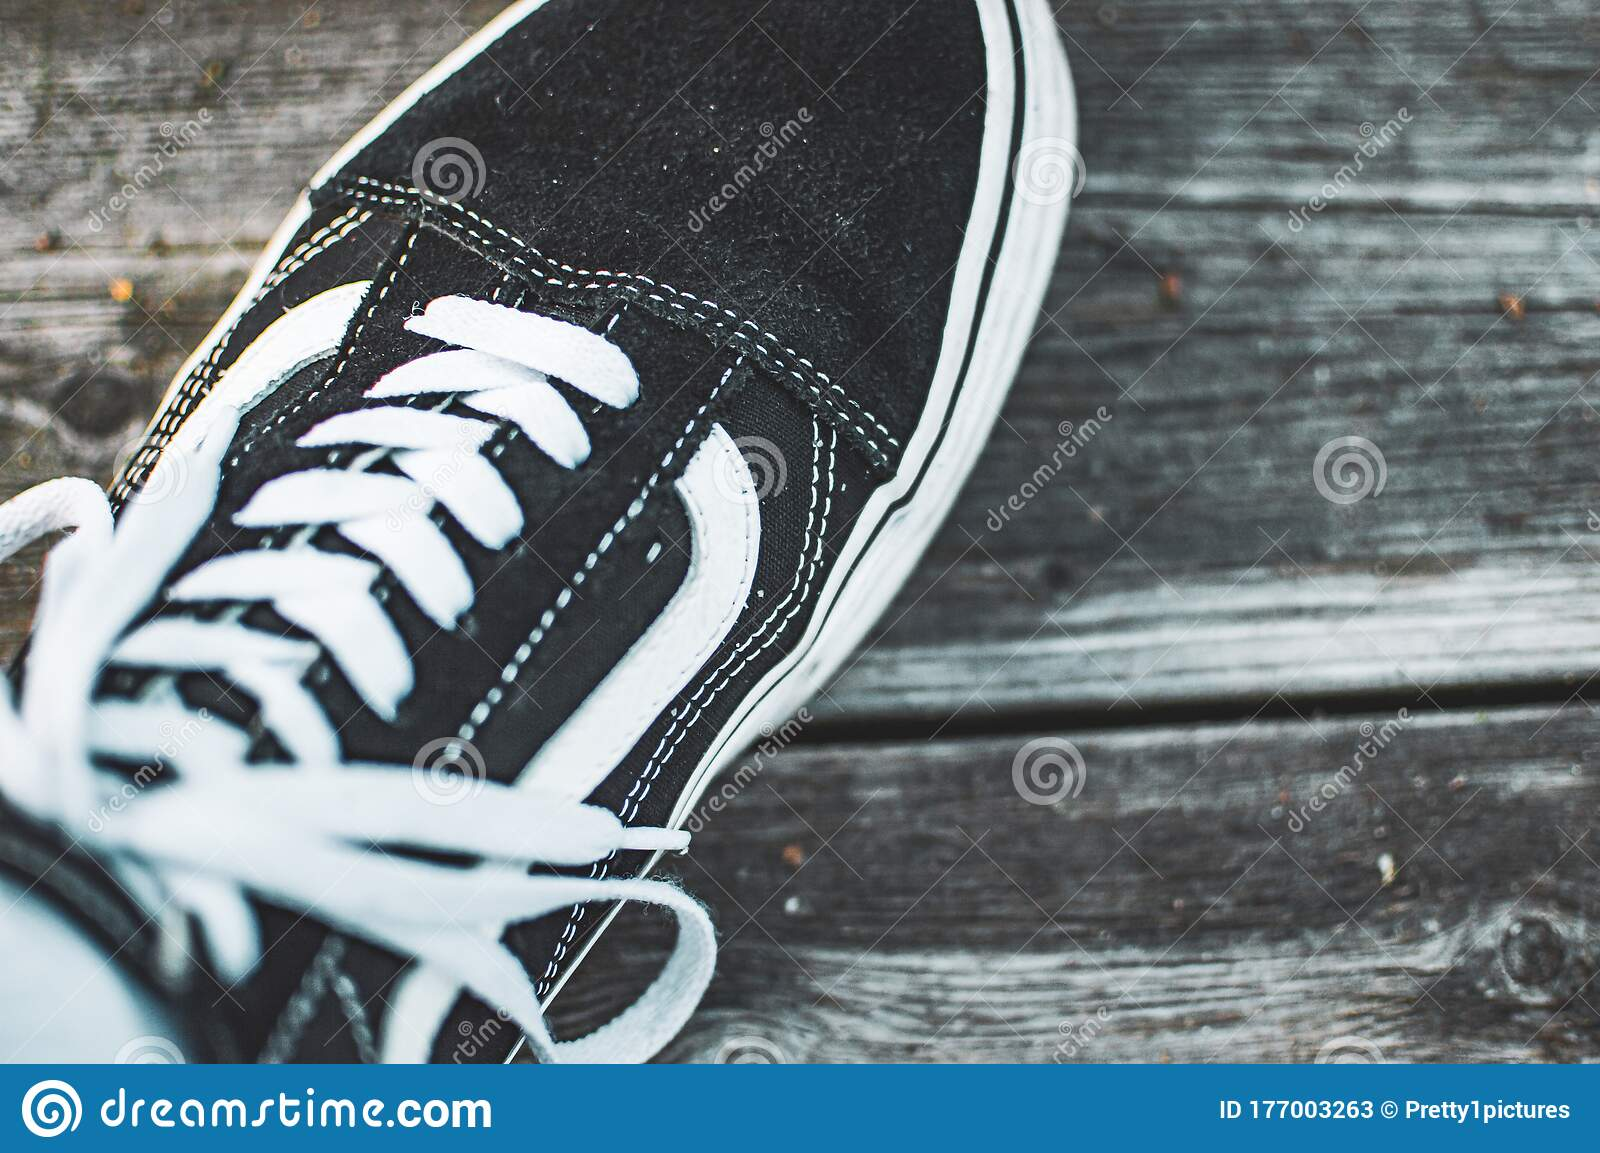 545 Vans Shoes Photos - Free & Royalty-Free Stock Photos from ...